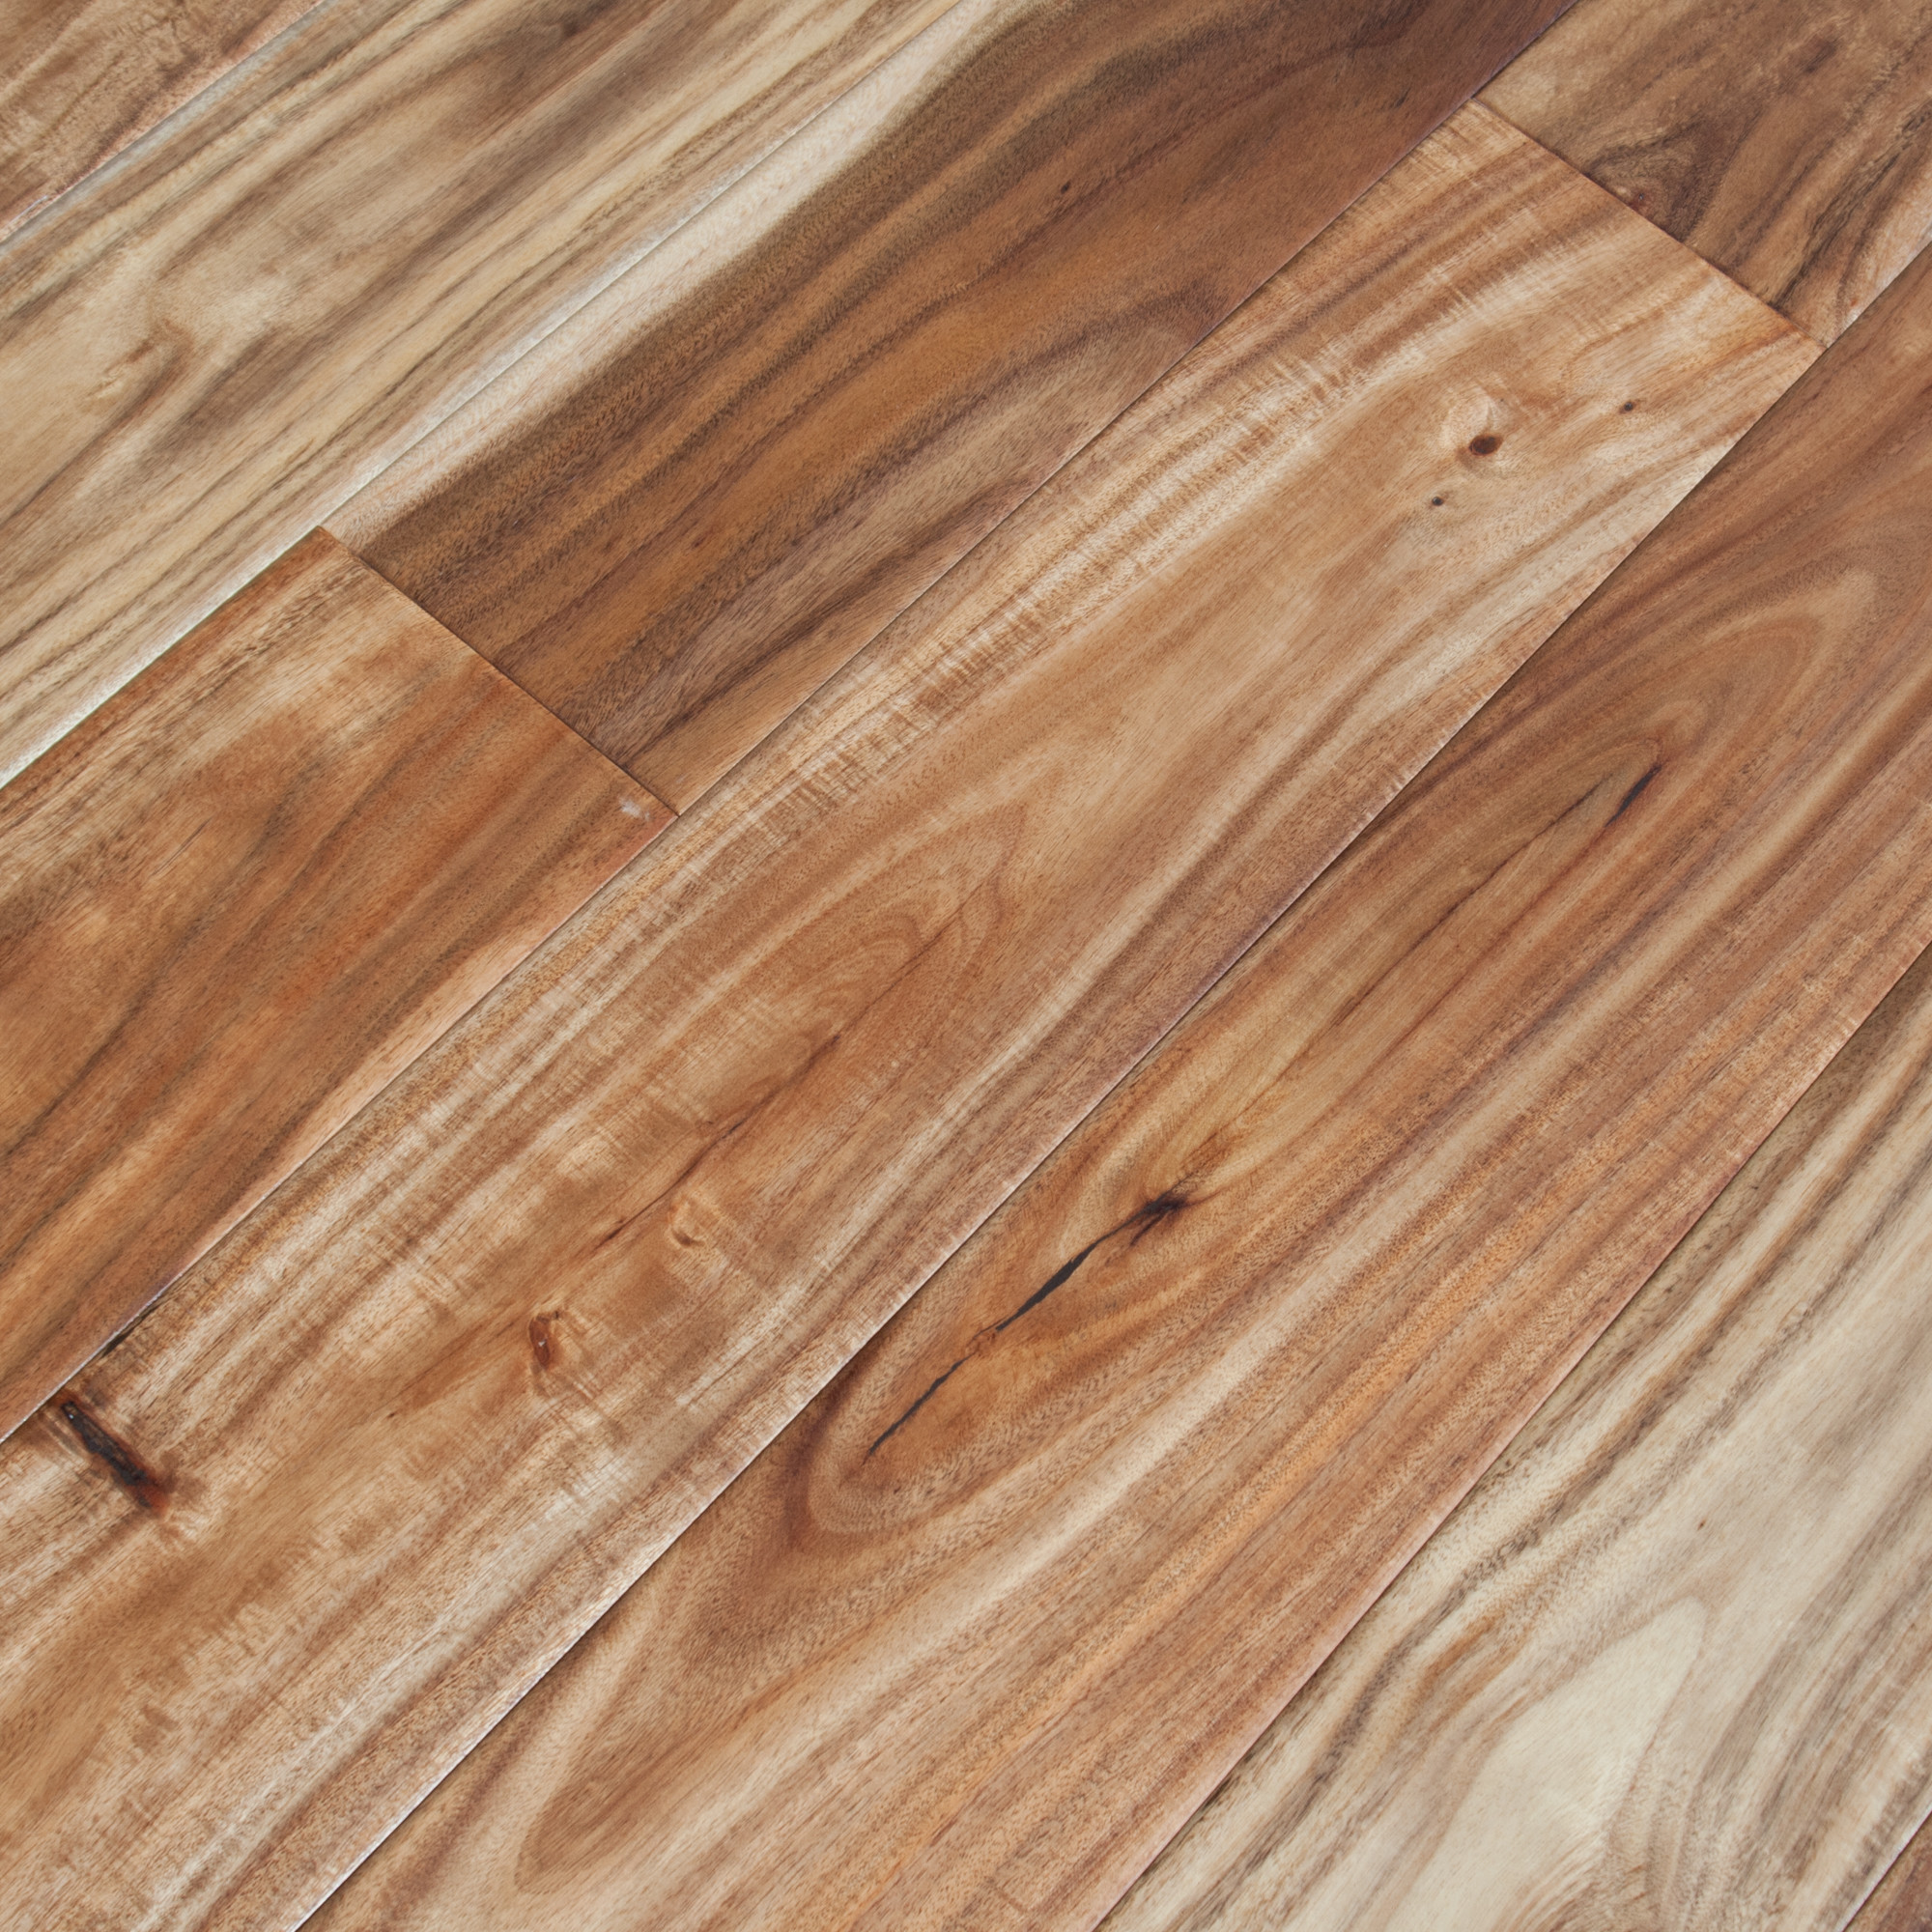 maple hardwood flooring hardness of 9 mile creek acacia hand scraped acacia confusa wood floors for acacia handscraped natural hardwood flooring